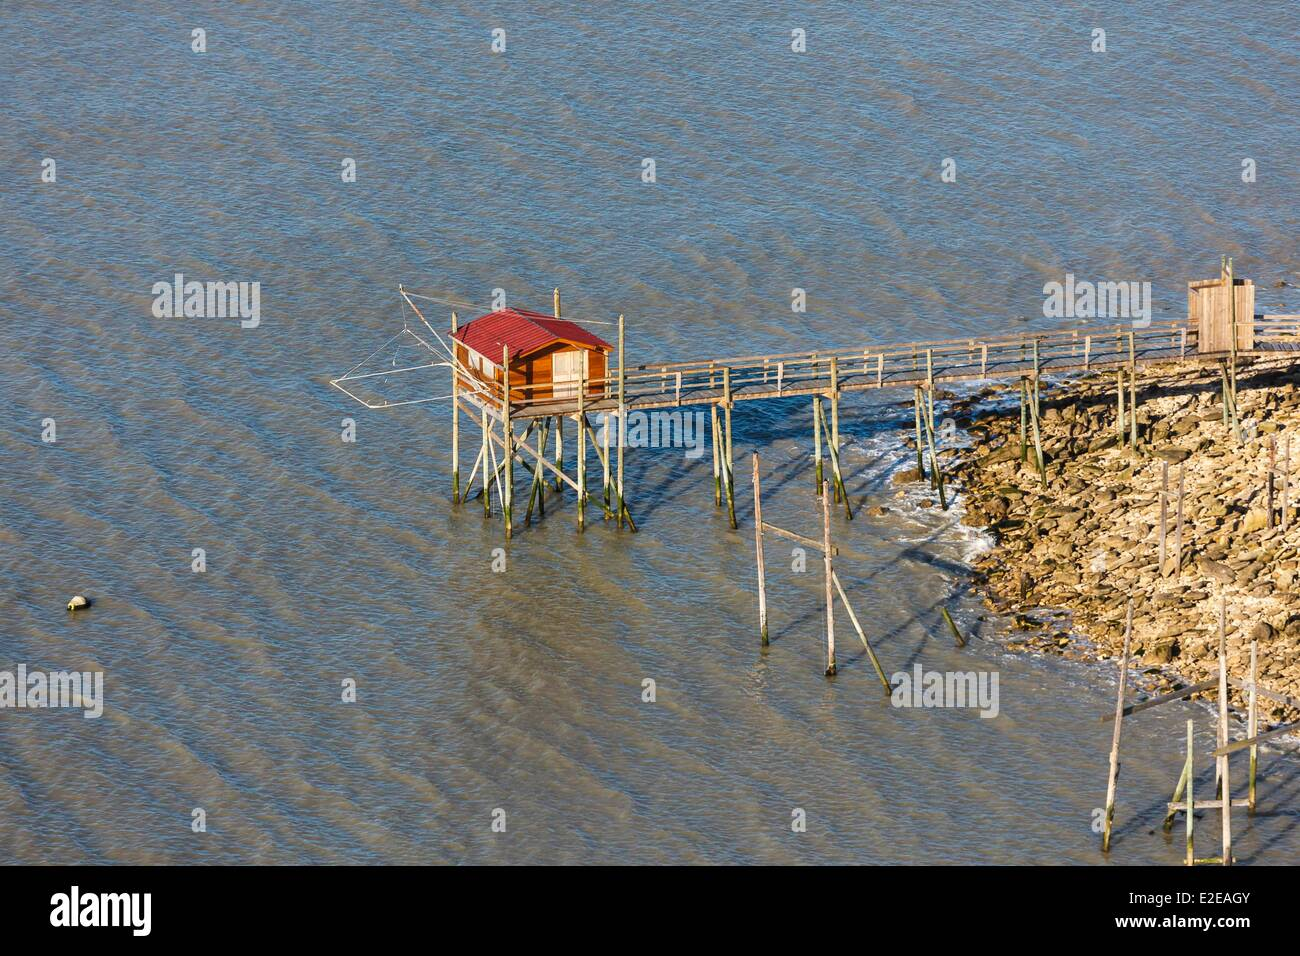 France, Charente-Maritime, Angoulins, fishery (aerial photography) - Stock Image